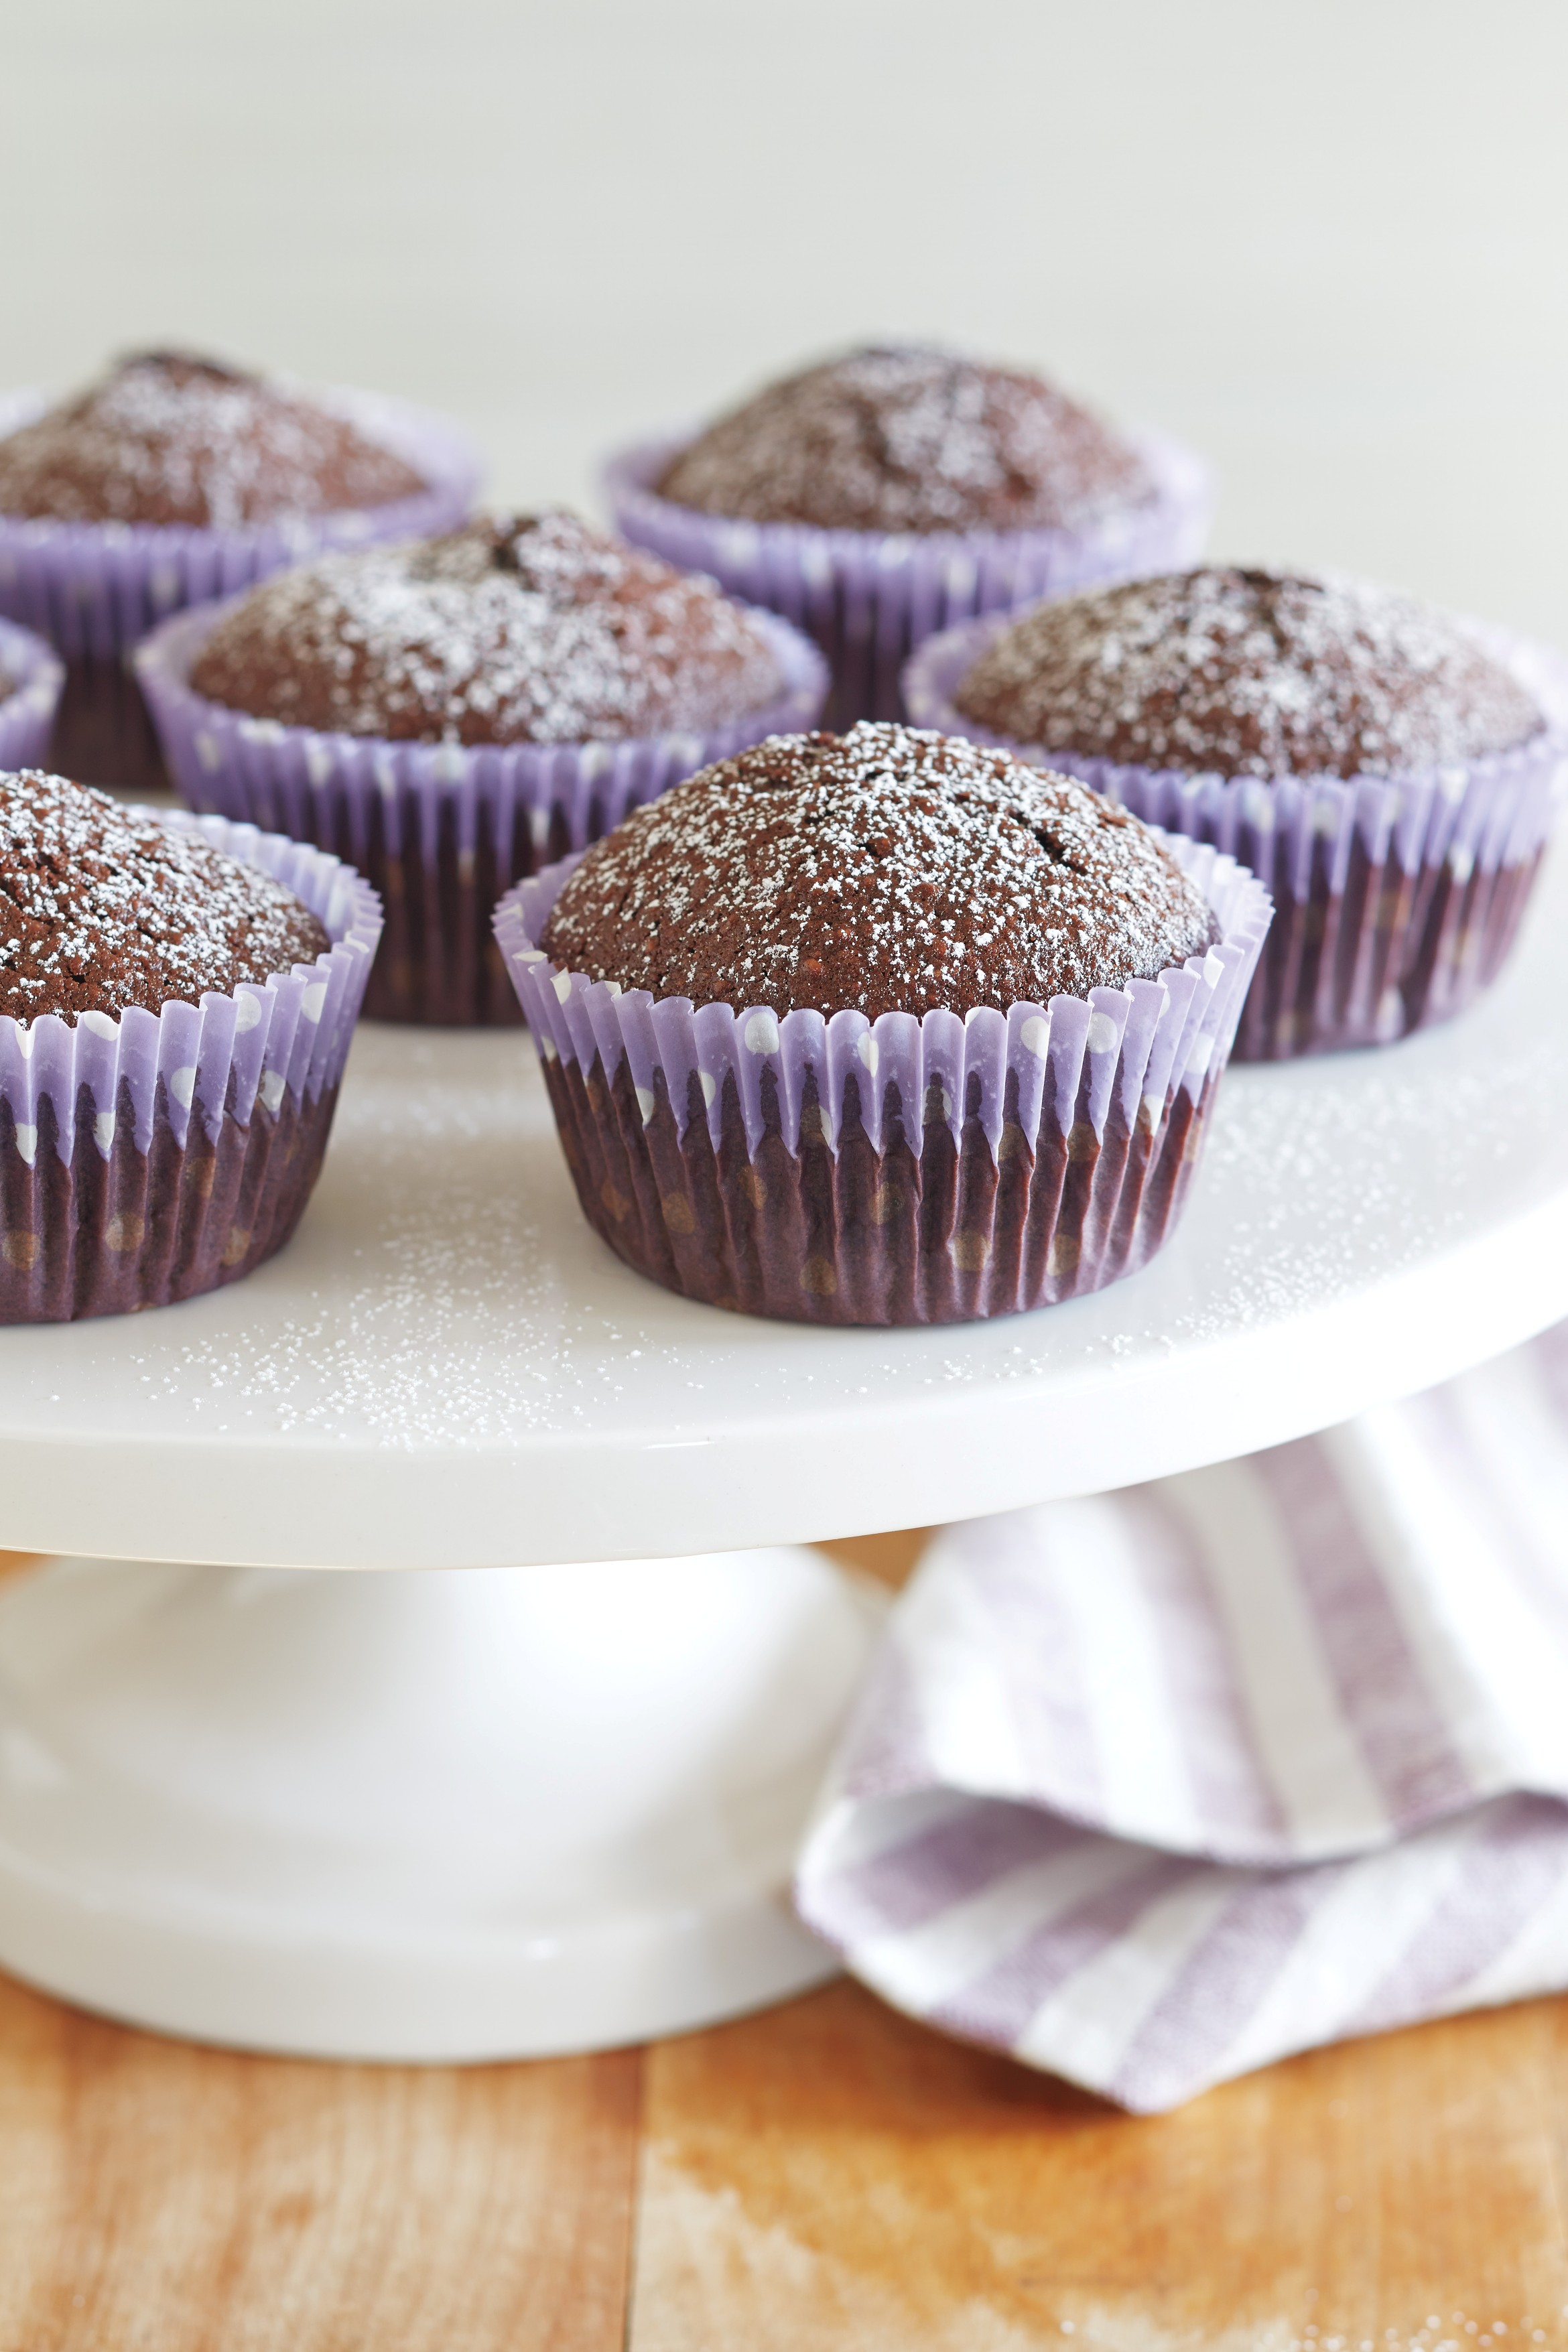 Flourless Chocolate Cupcakes from 100 Best Quick Gluten-Free Recipes